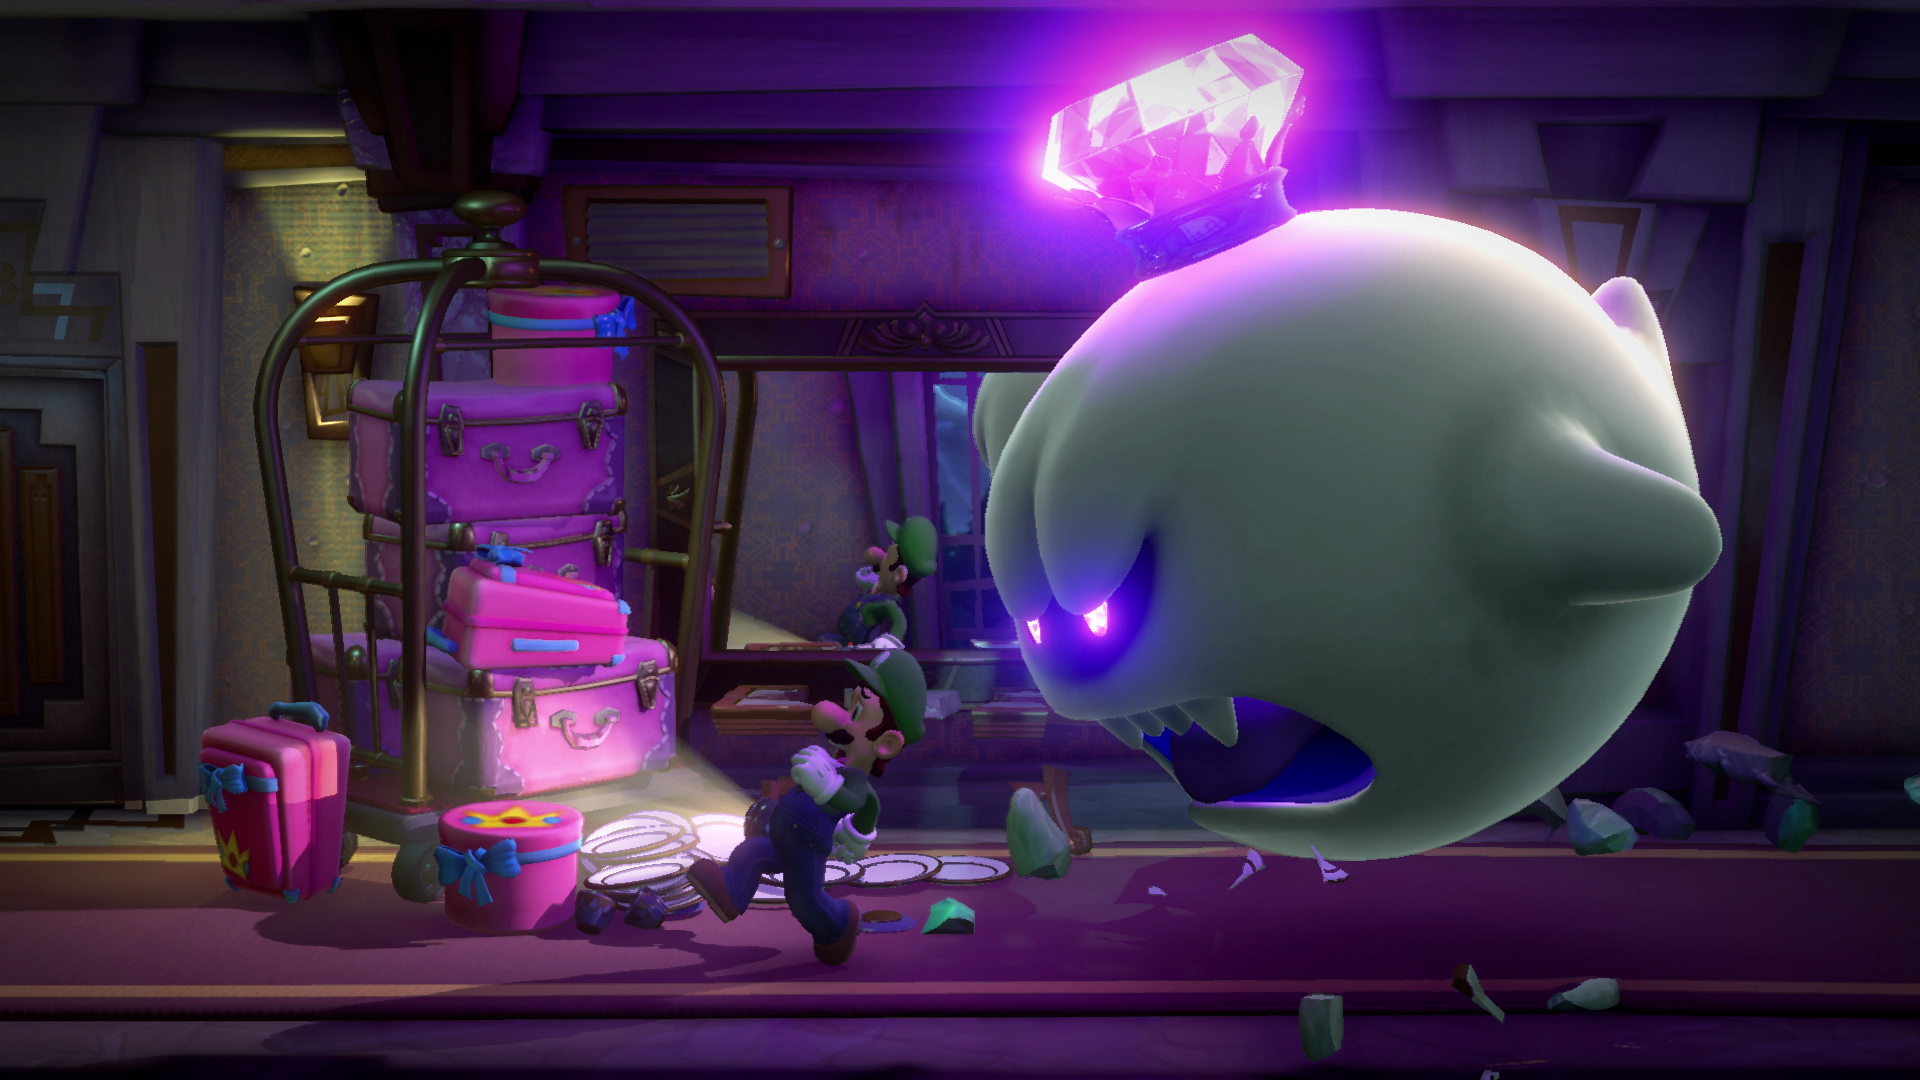 Luigi's Mansion 3 launches on Halloween